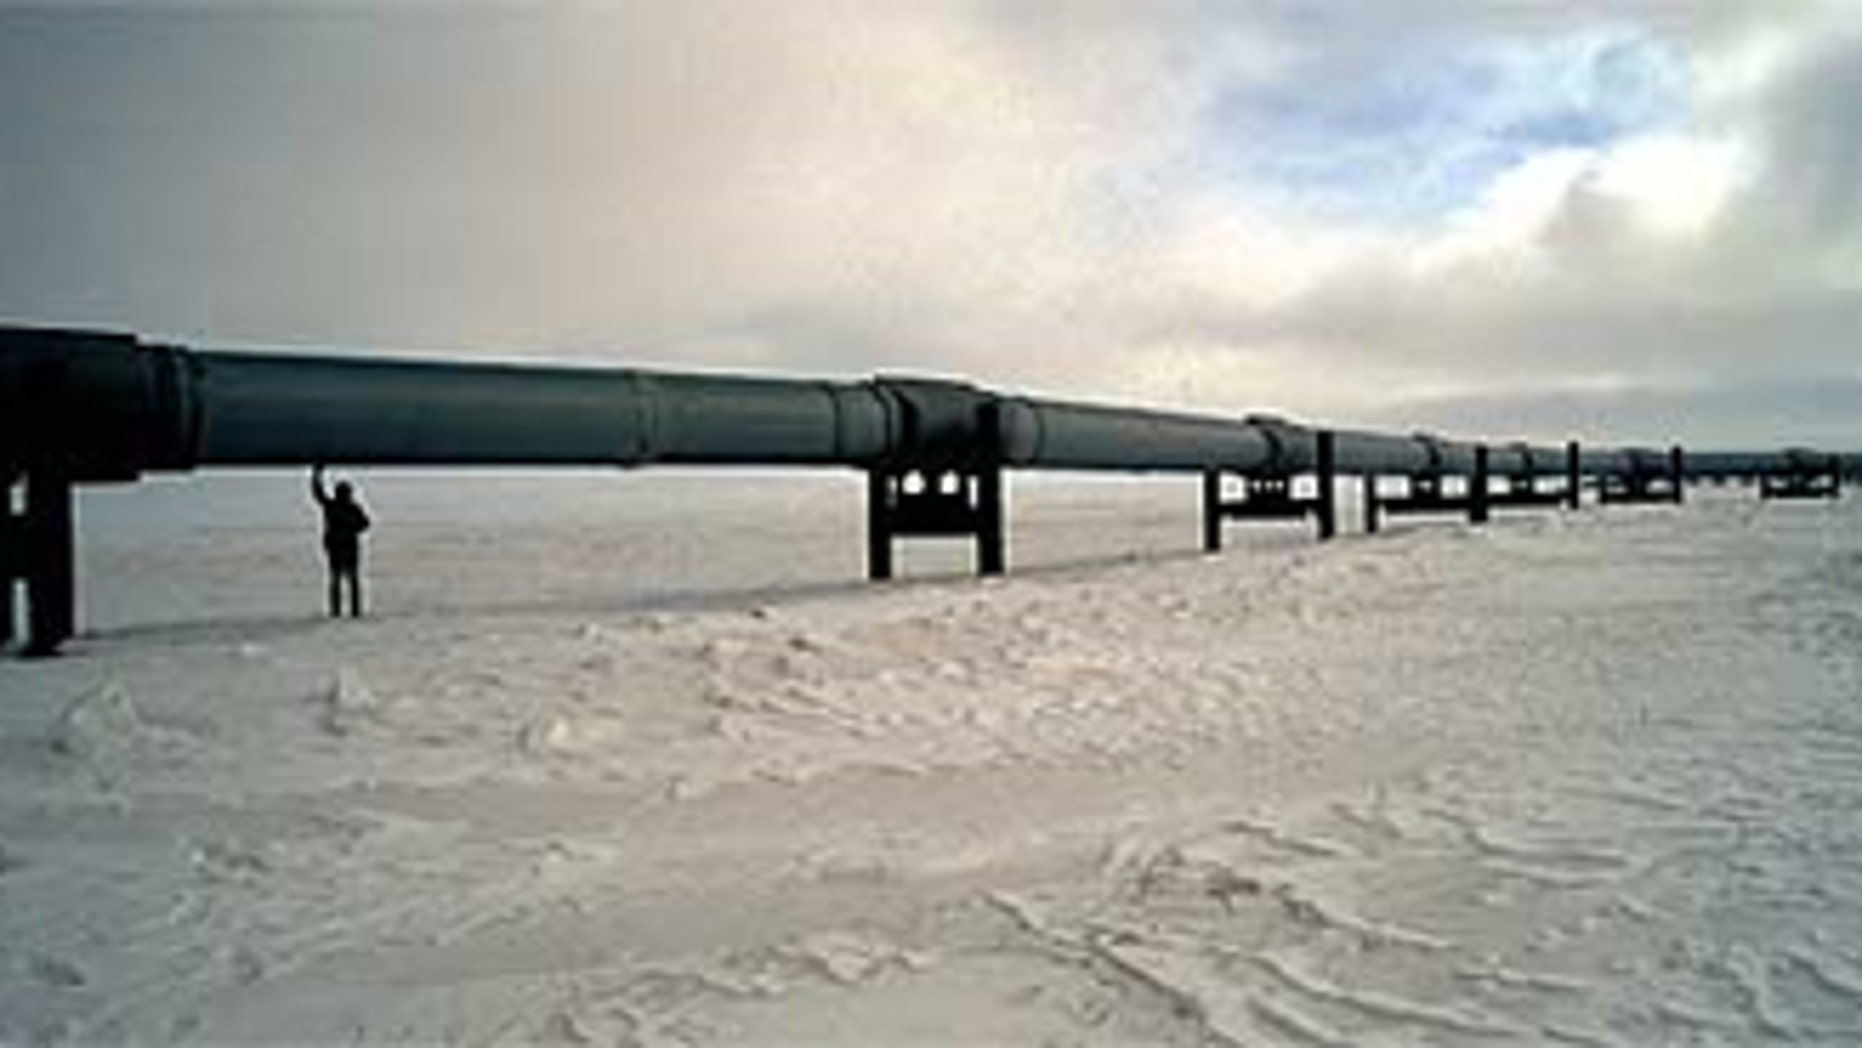 A BP worker inspects a segment of pipeline in Prudhoe Bay in Alaska, North America's largest oil field.